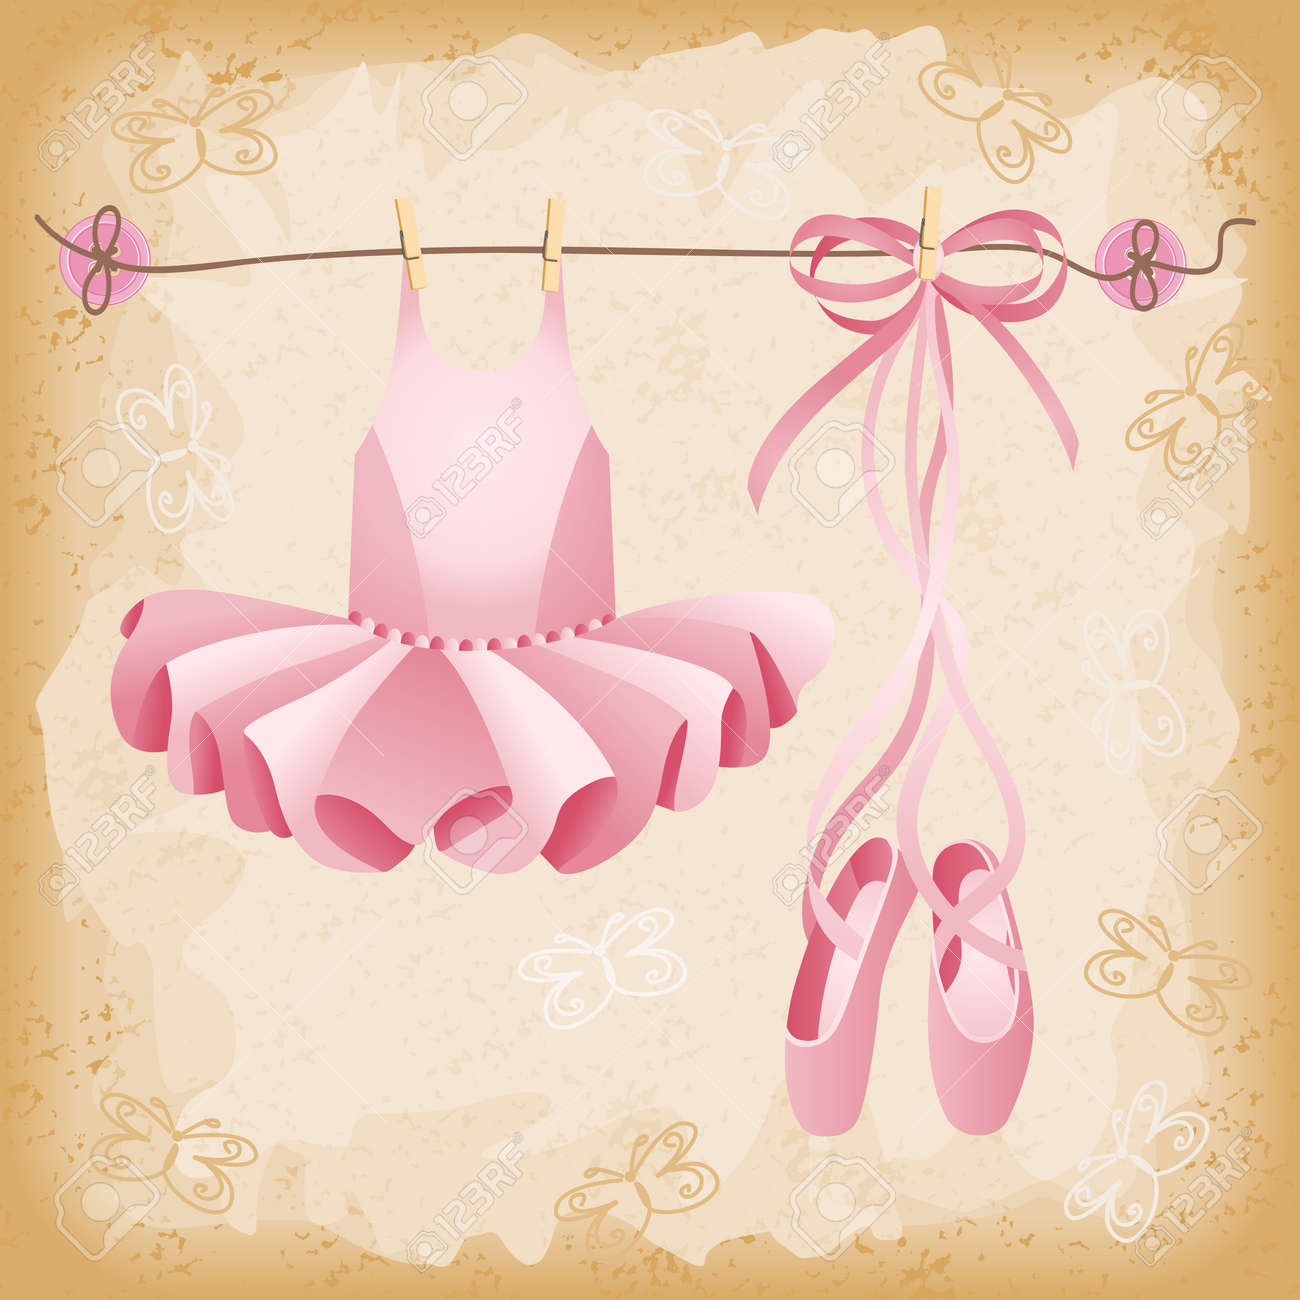 pink ballet slippers and tutu background royalty free cliparts